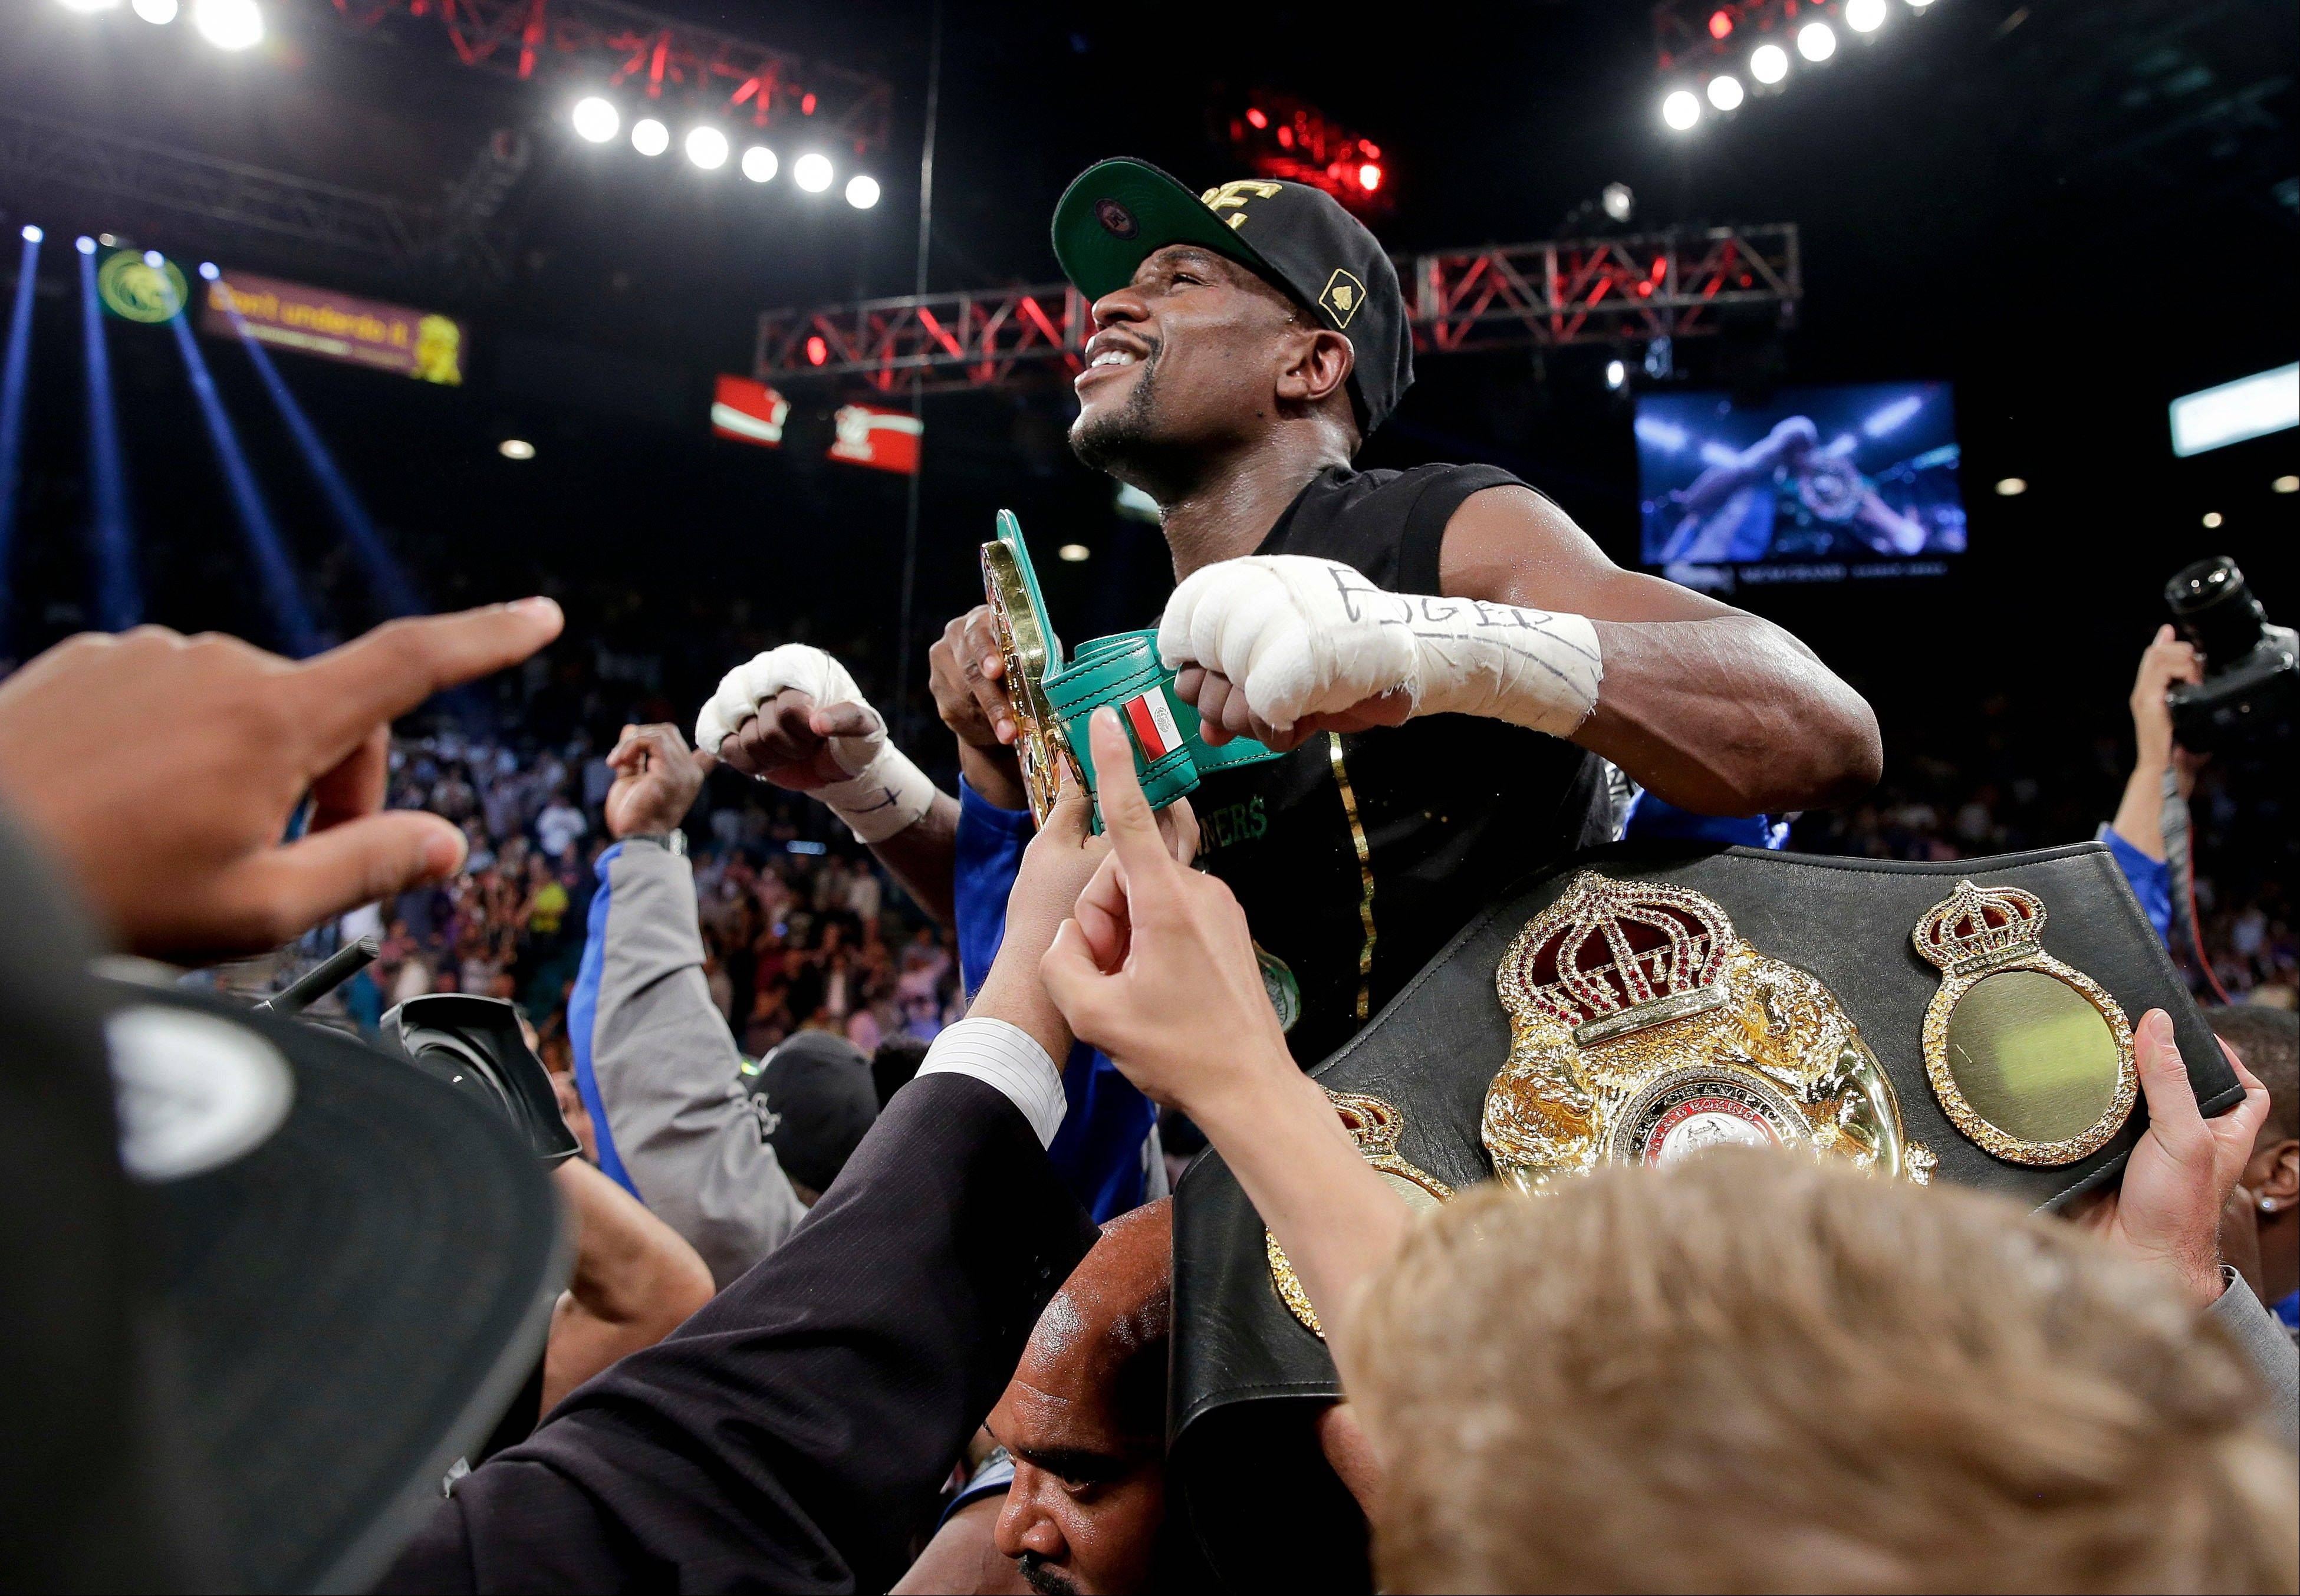 Floyd Mayweather Jr. celebrates after defeating Canelo Alvarez in a 152-pound title fight, Saturday, Sept. 14, 2013, in Las Vegas.